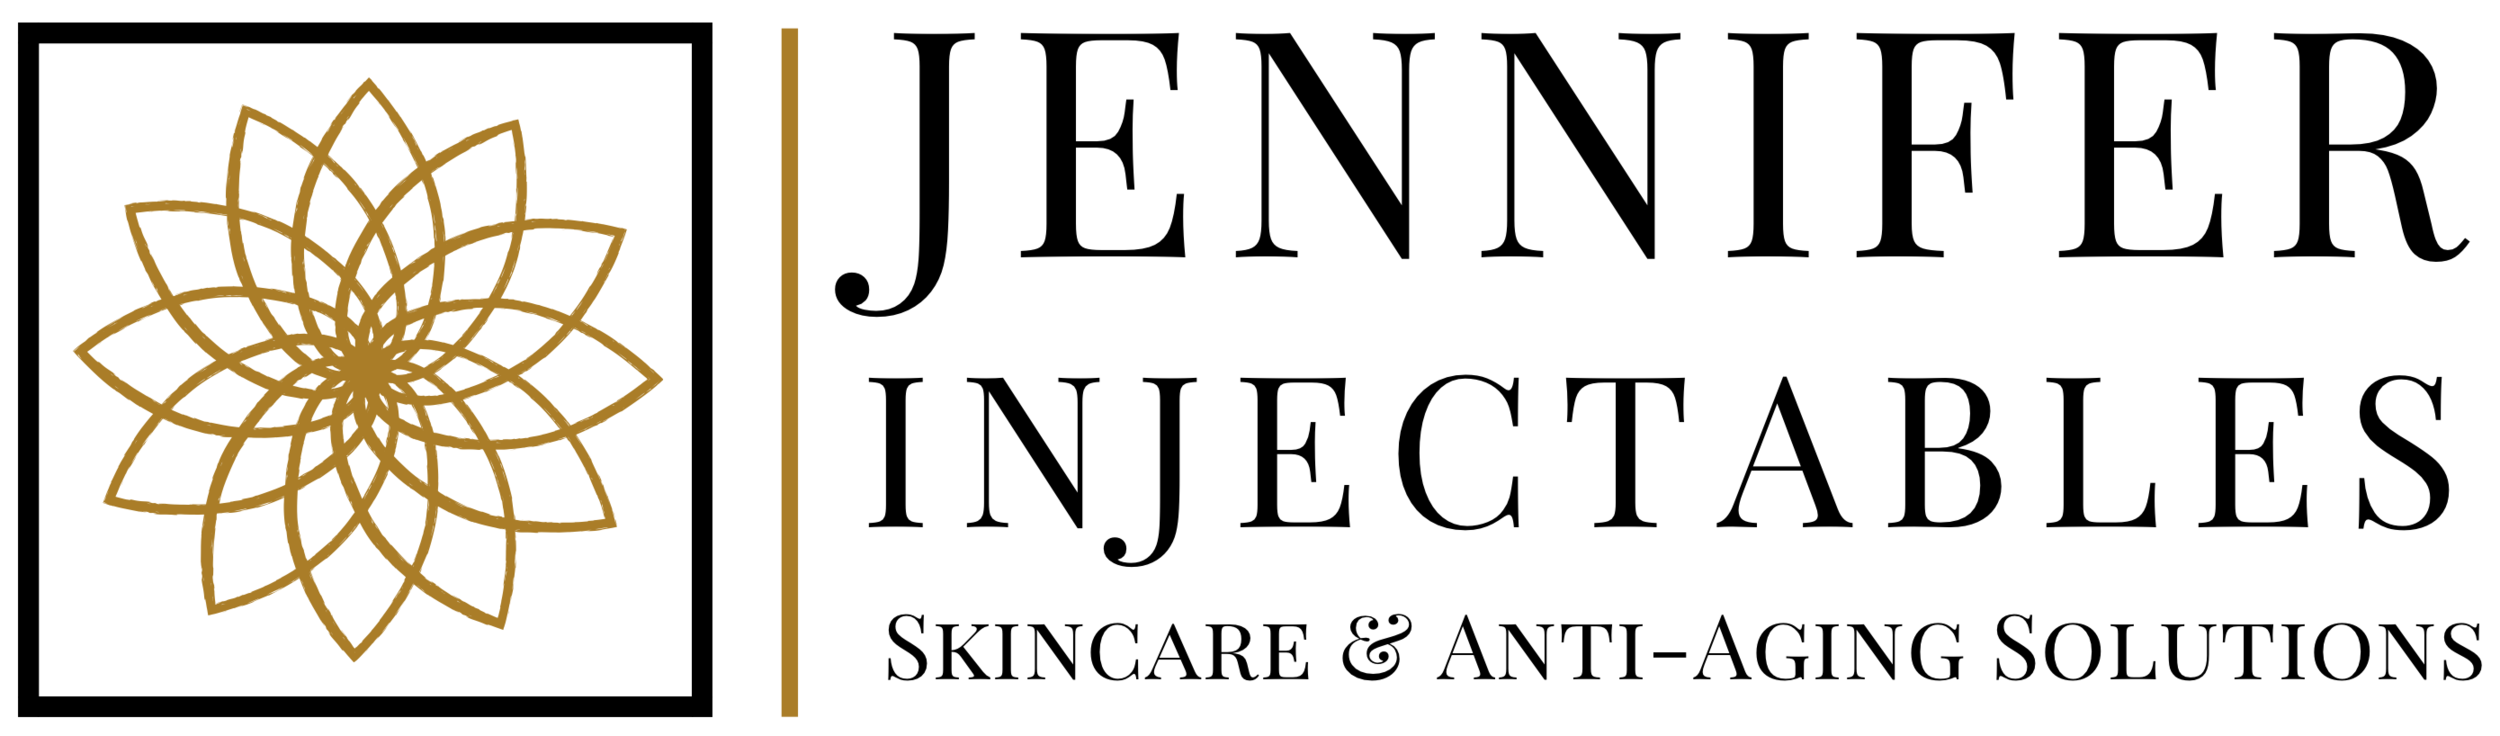 Jennifer Injectables